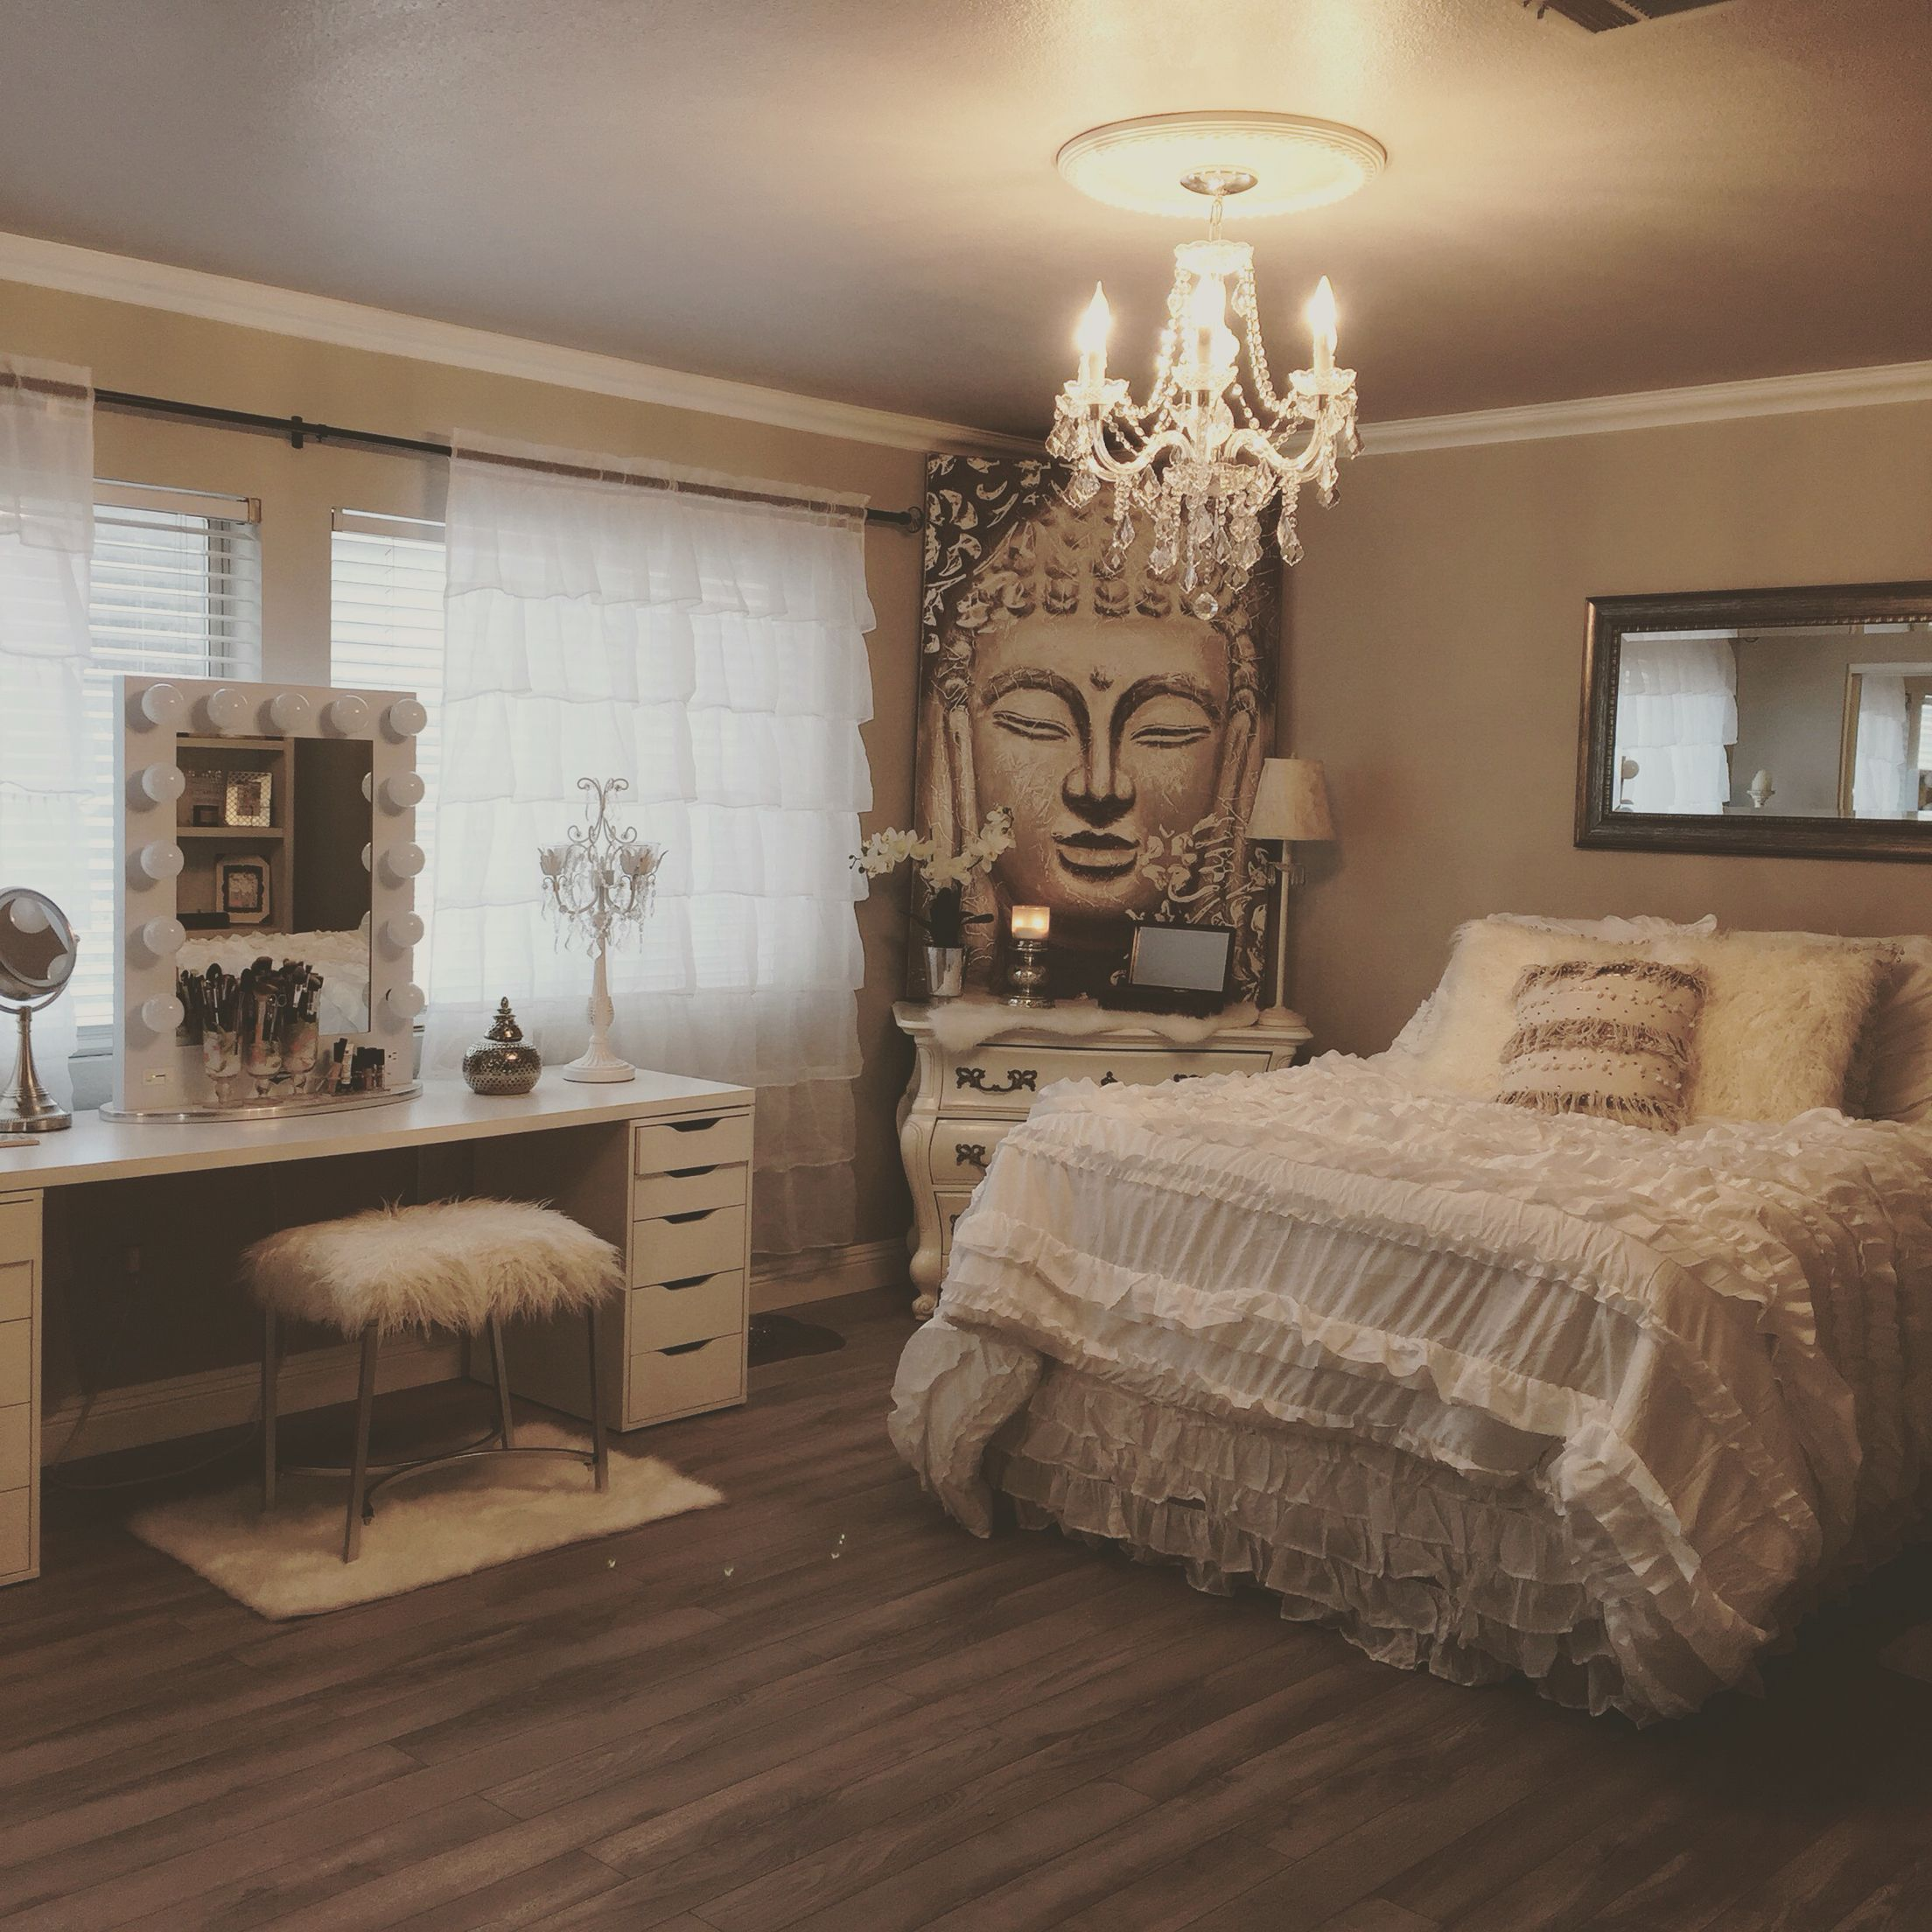 Shabby chic meets zen glam my new bedroom pinterest for Bedroom decor design ideas